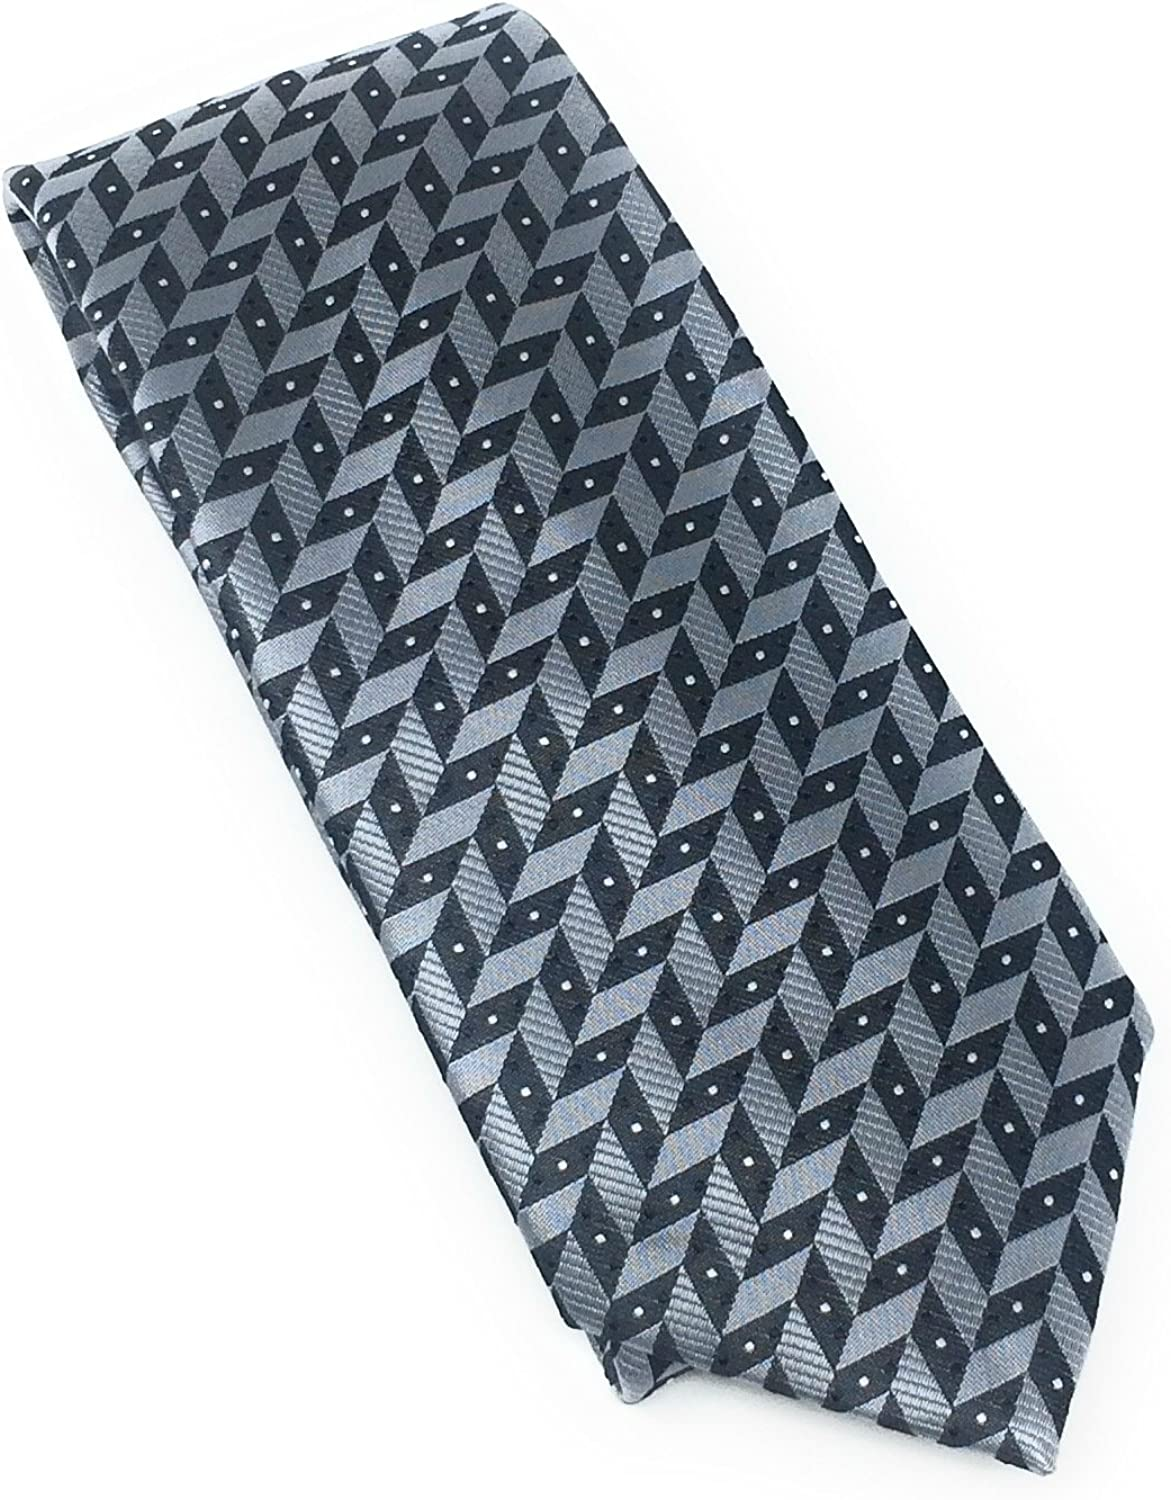 Charcoal Abstract 100% Silk Woven Necktie Set with Pocket Square